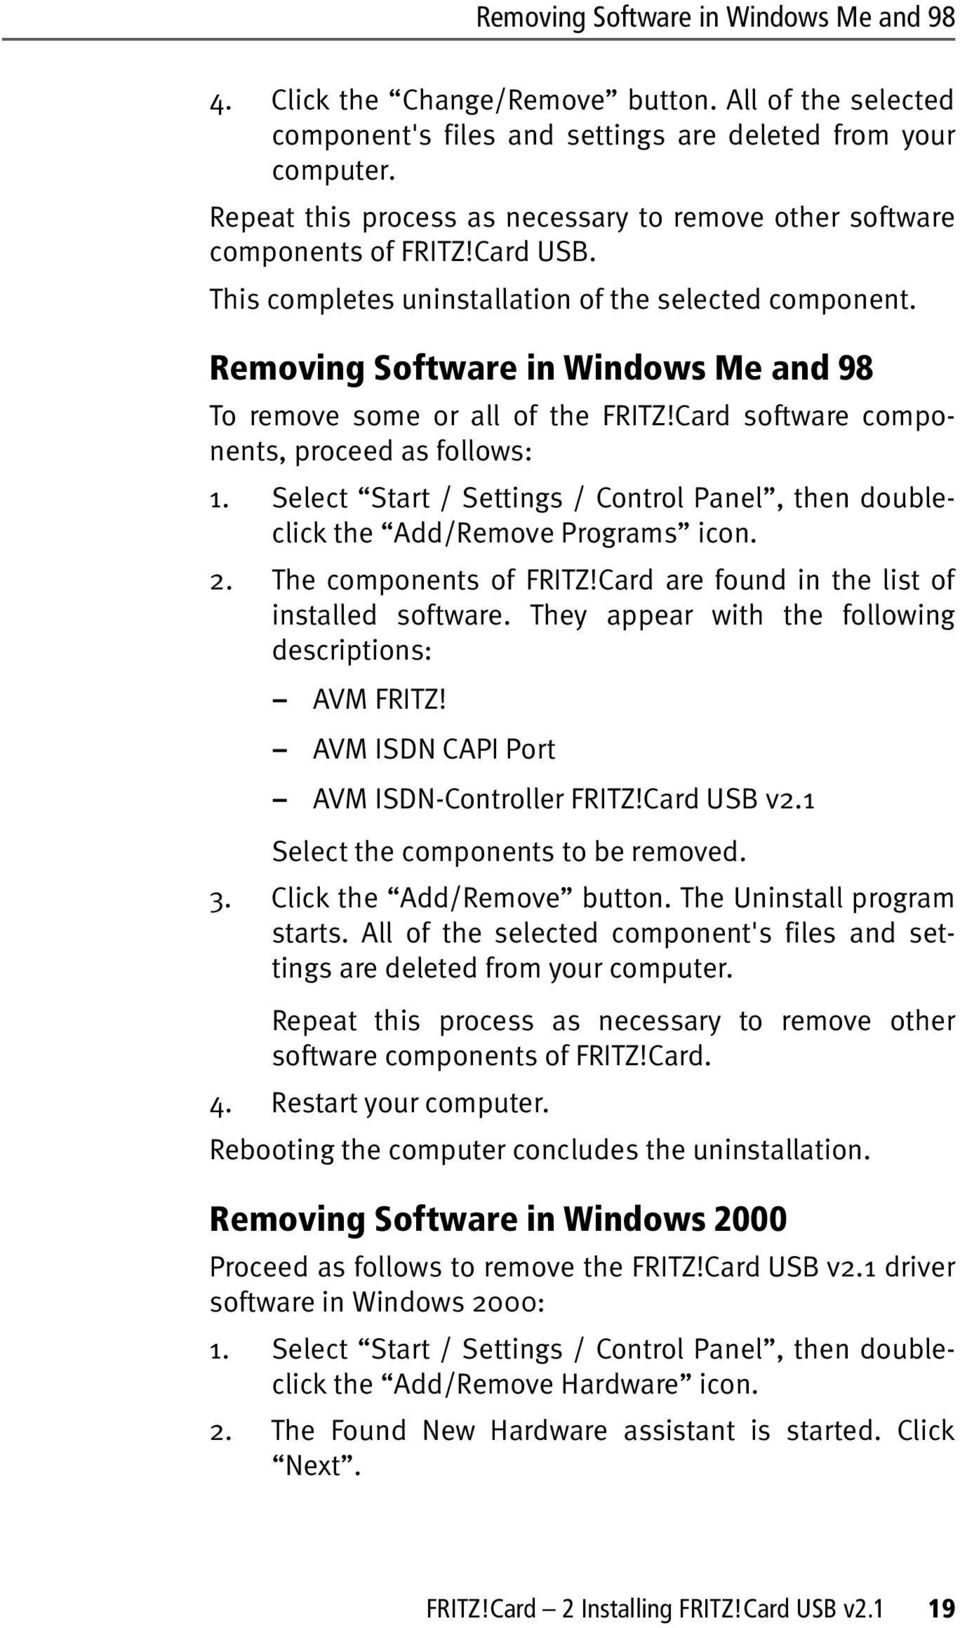 from doc to pdf remove